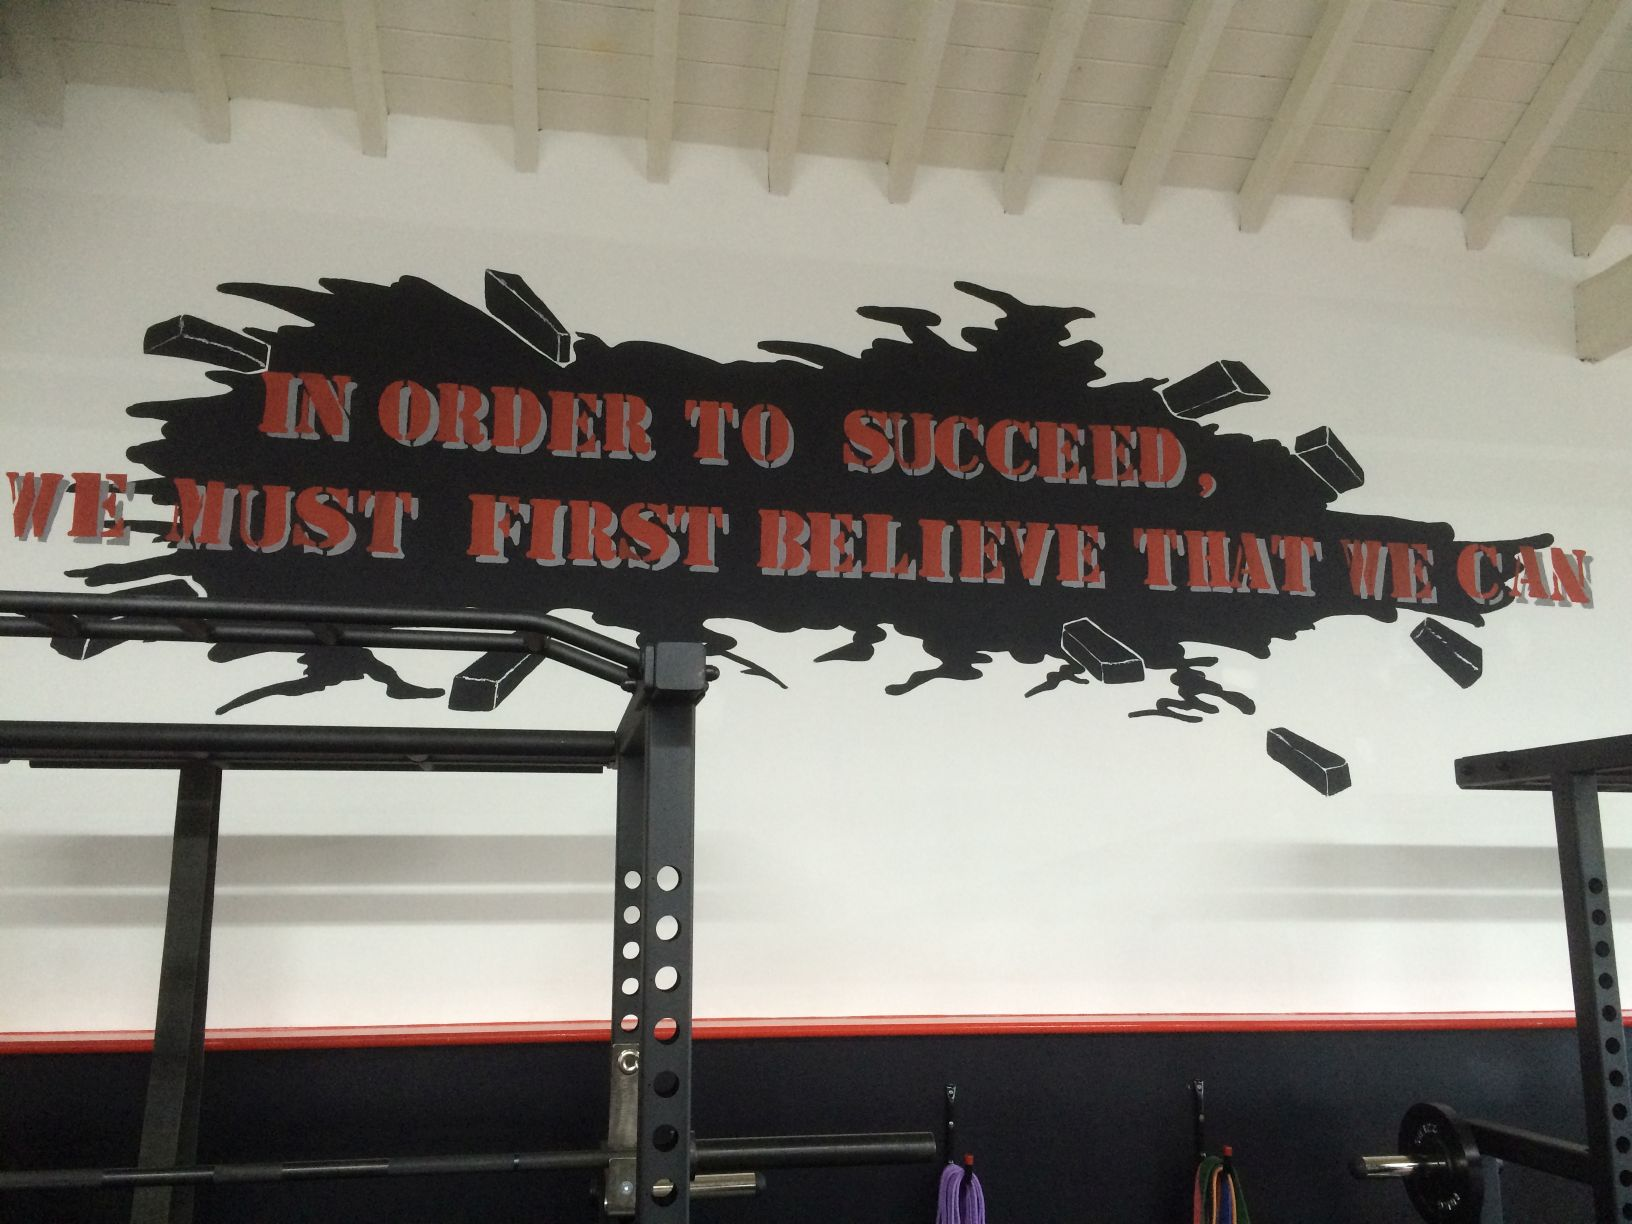 in order to succeed - first believe we can